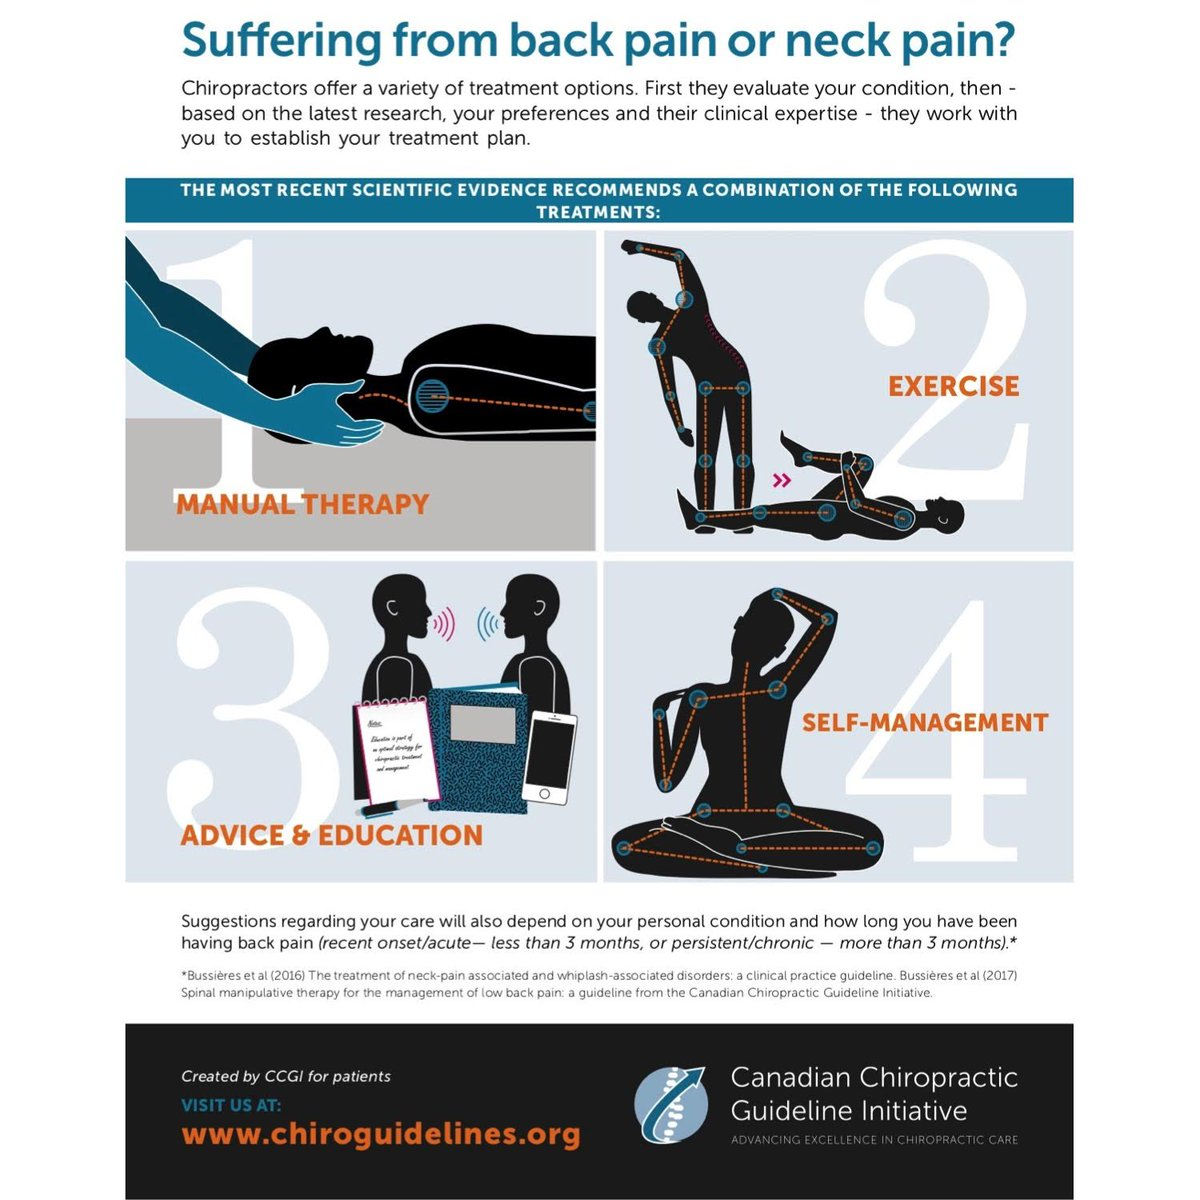 Chiropractor do for Neck Pain?